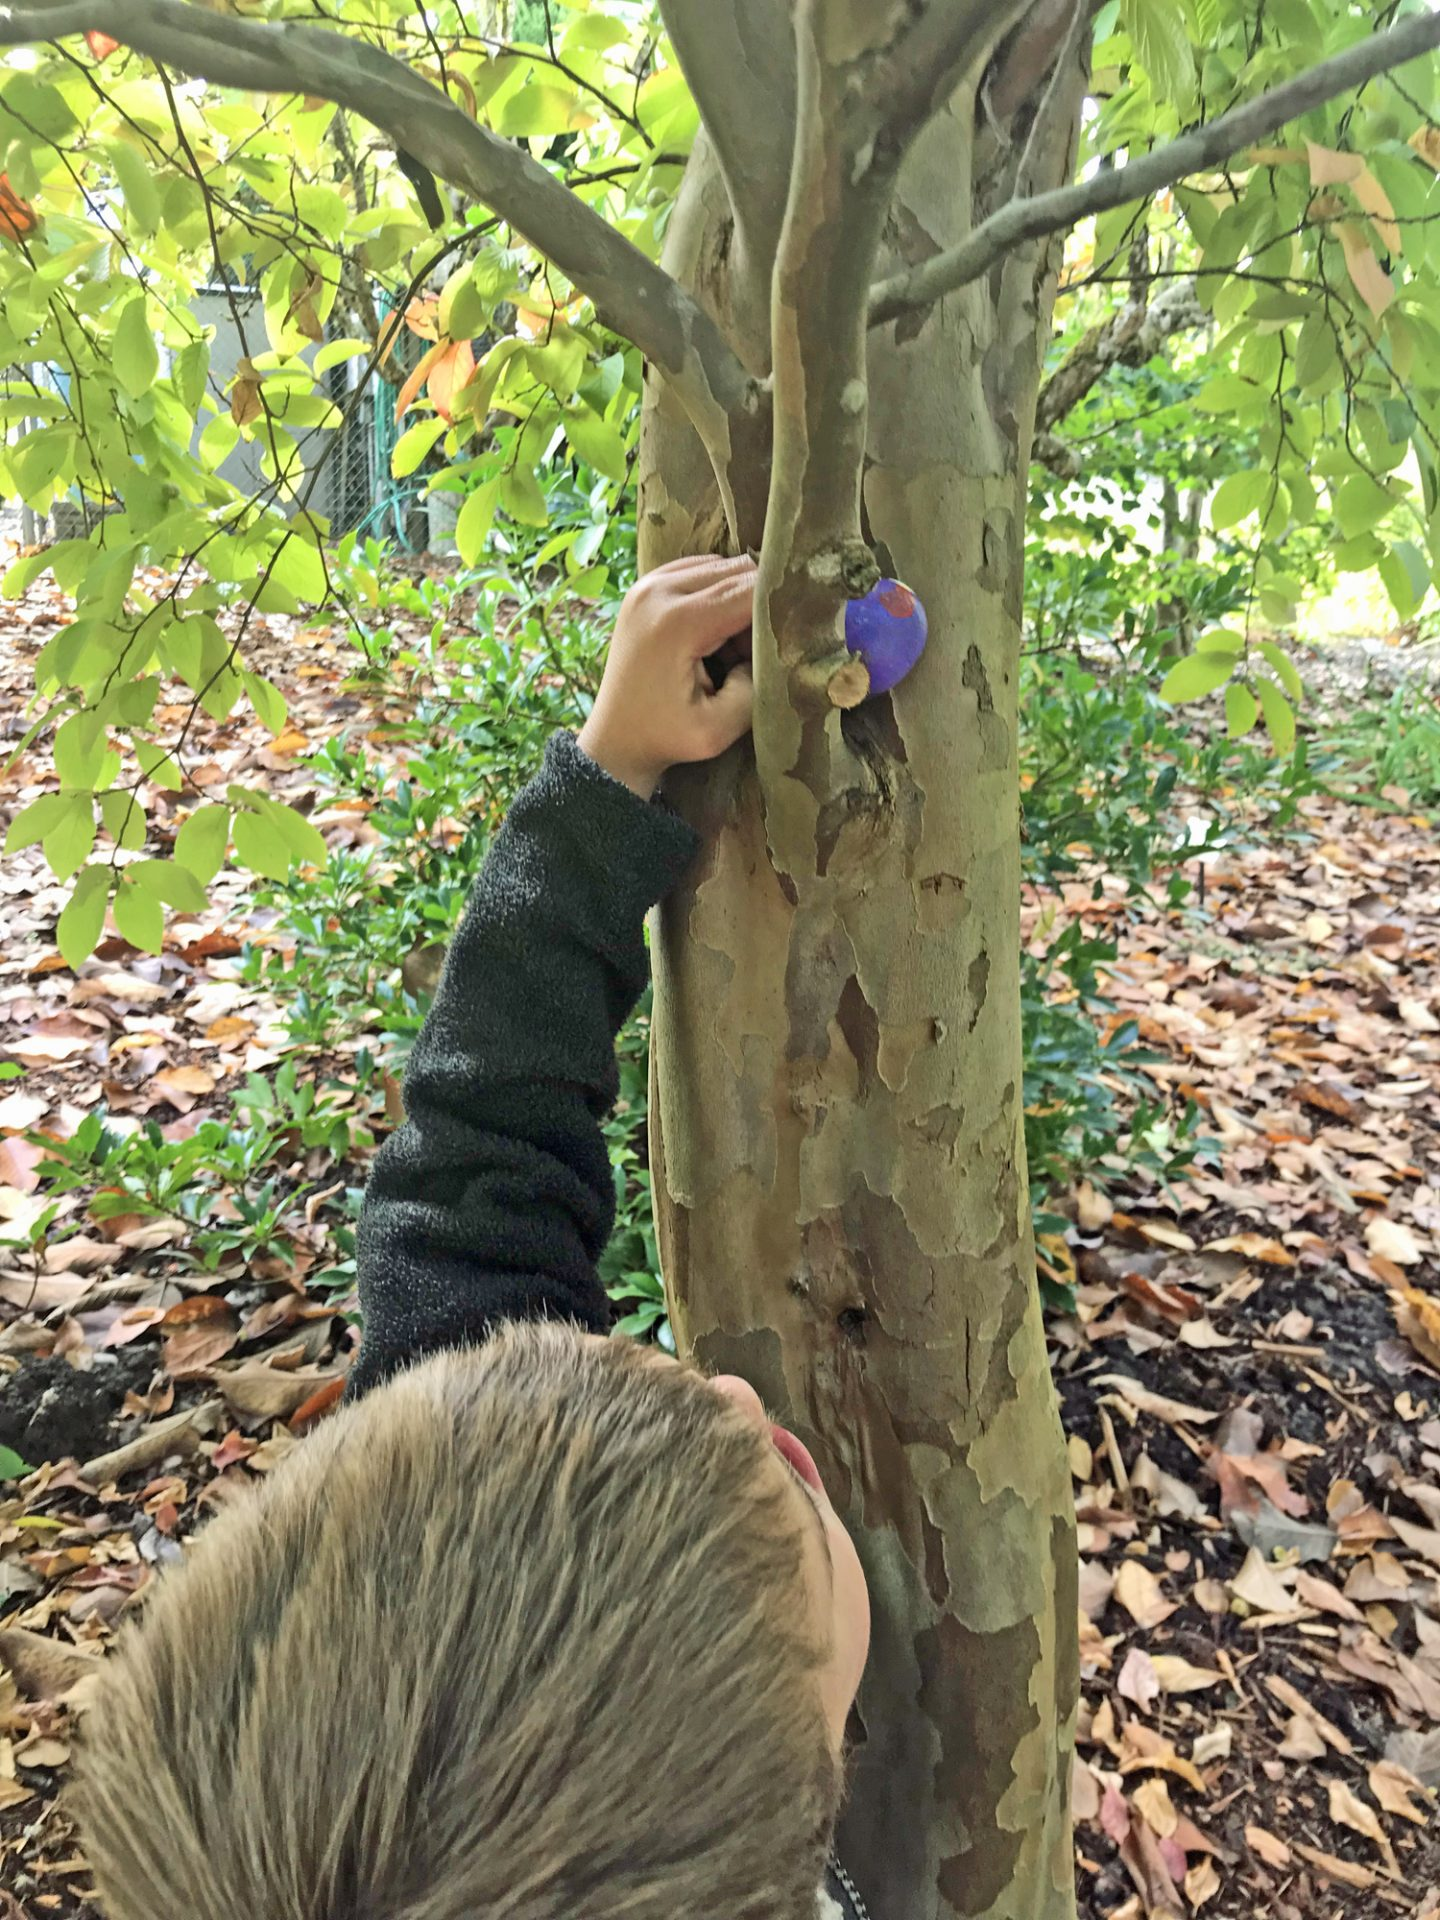 Our 5 year old hides a painted rock in a tree